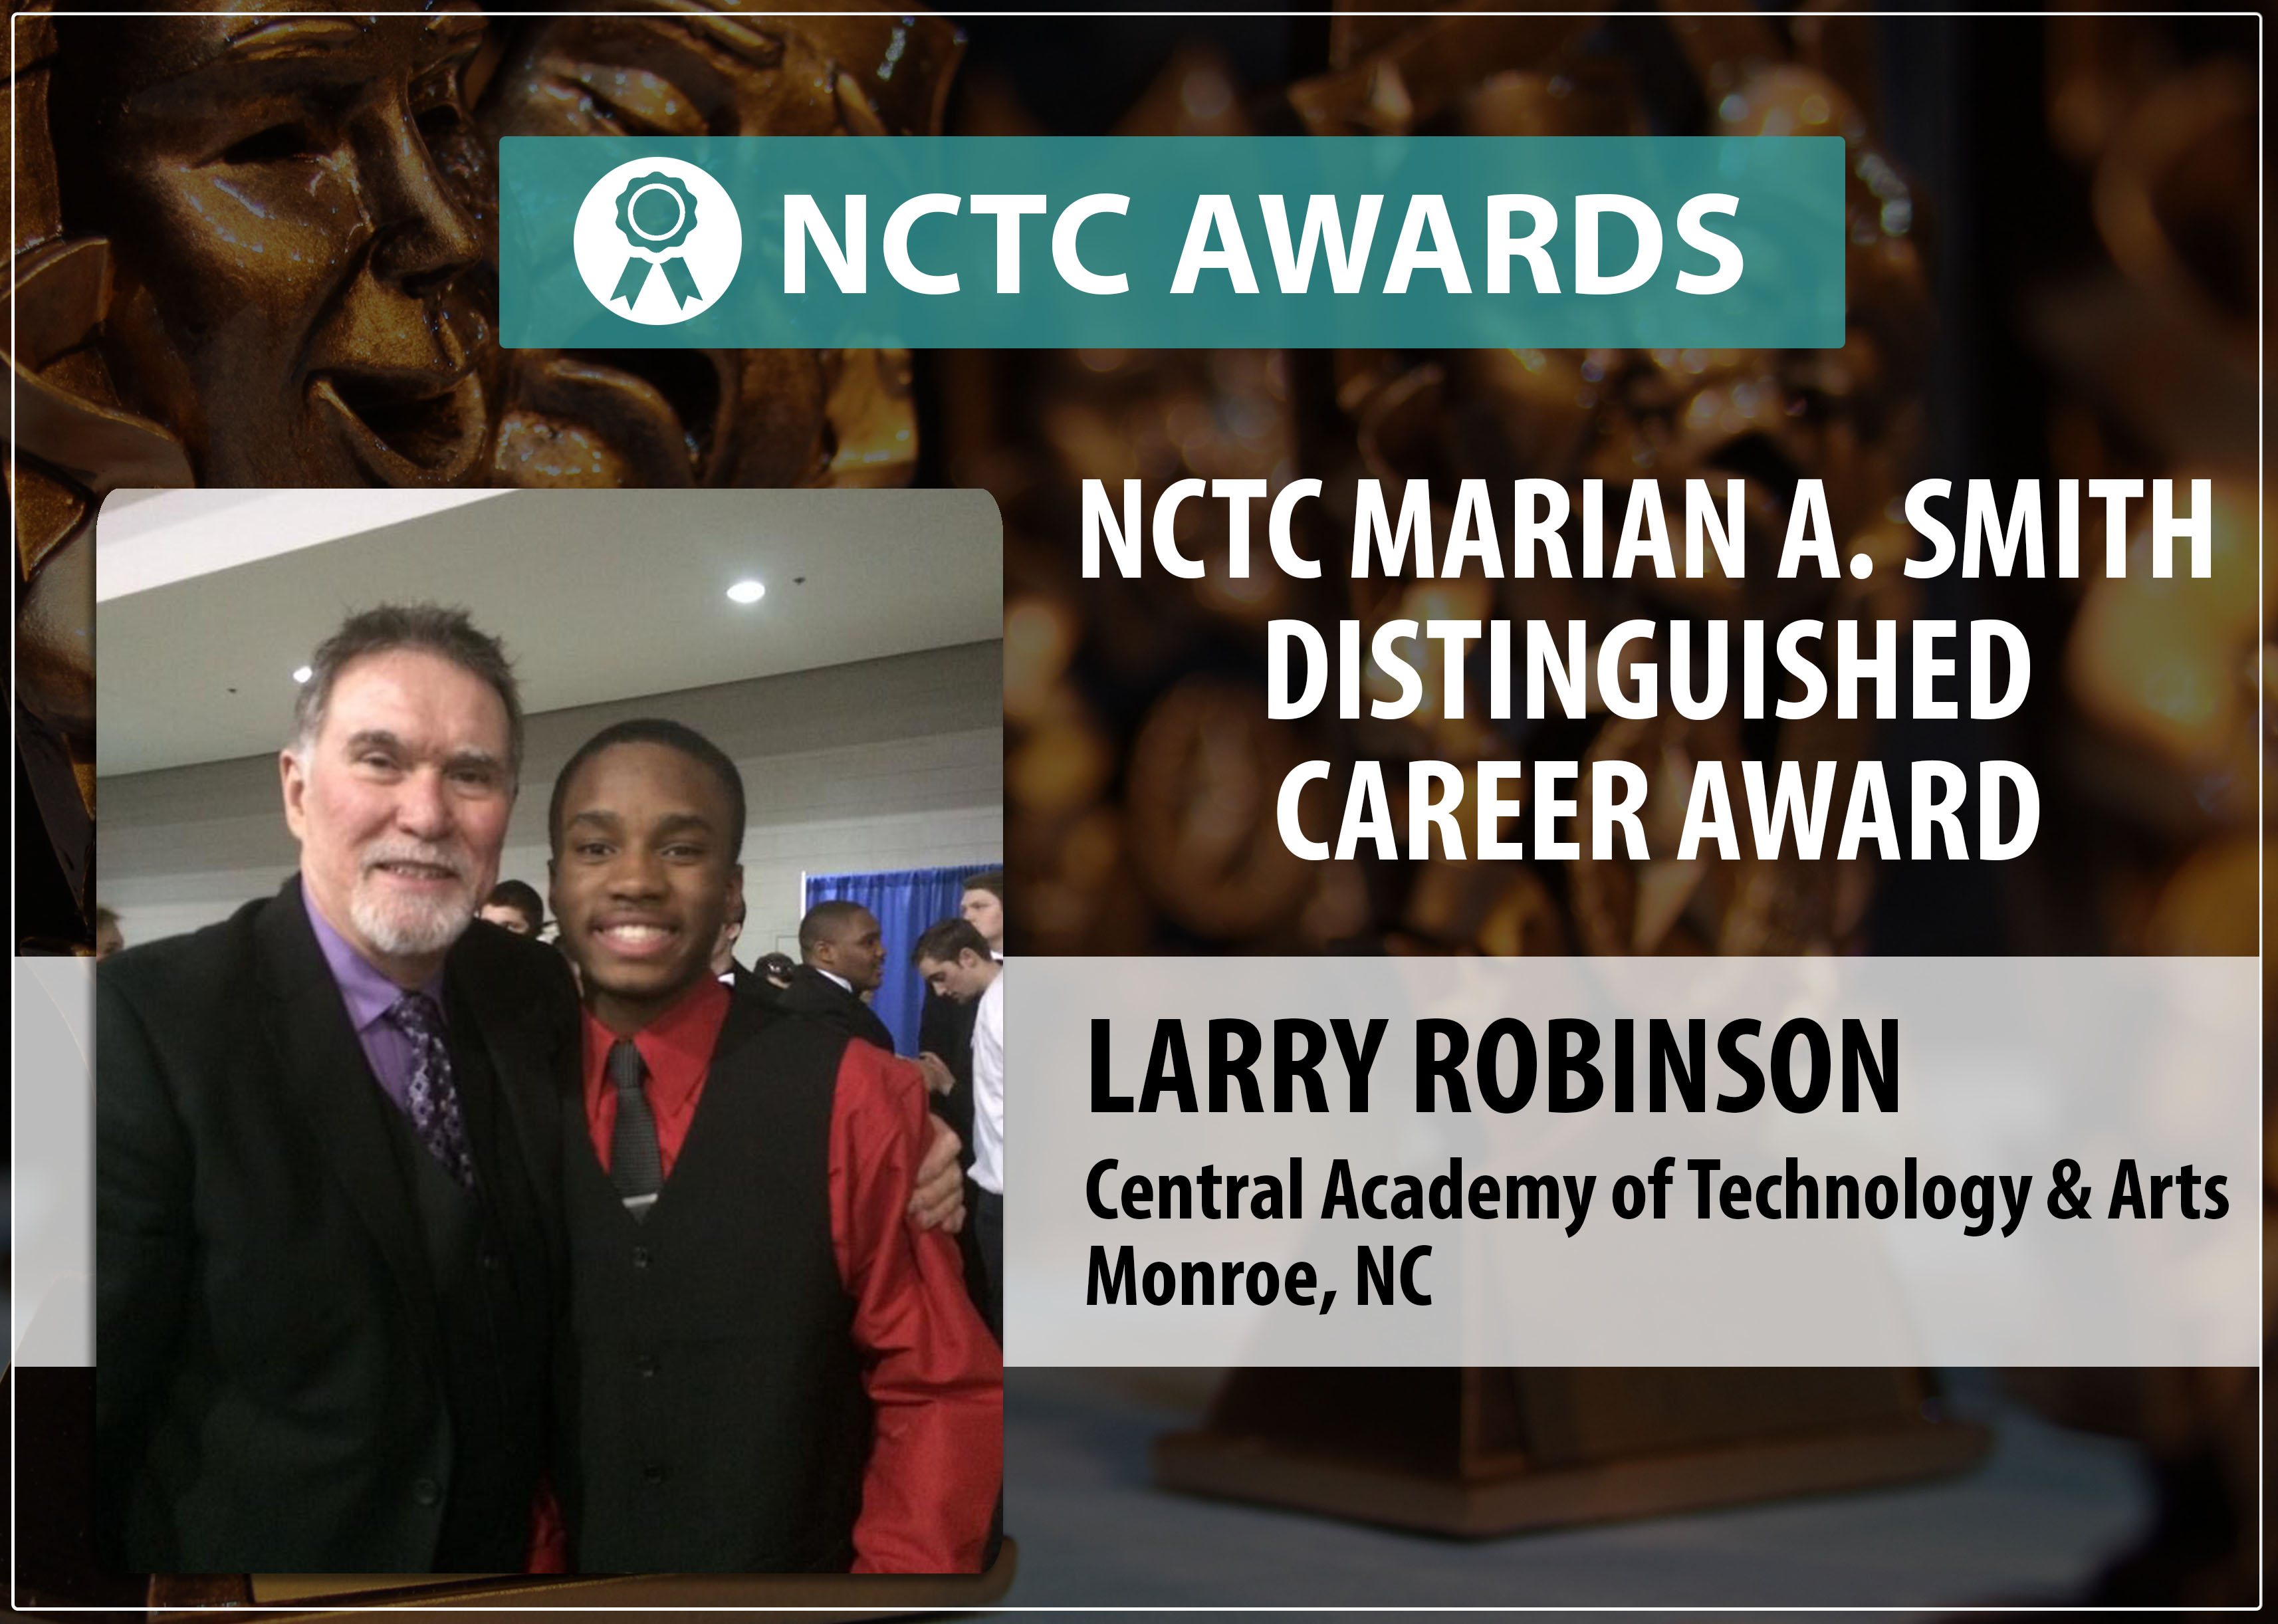 NCTC Marian A. Smith Distinguished Career Award Recipient Larry Robinson